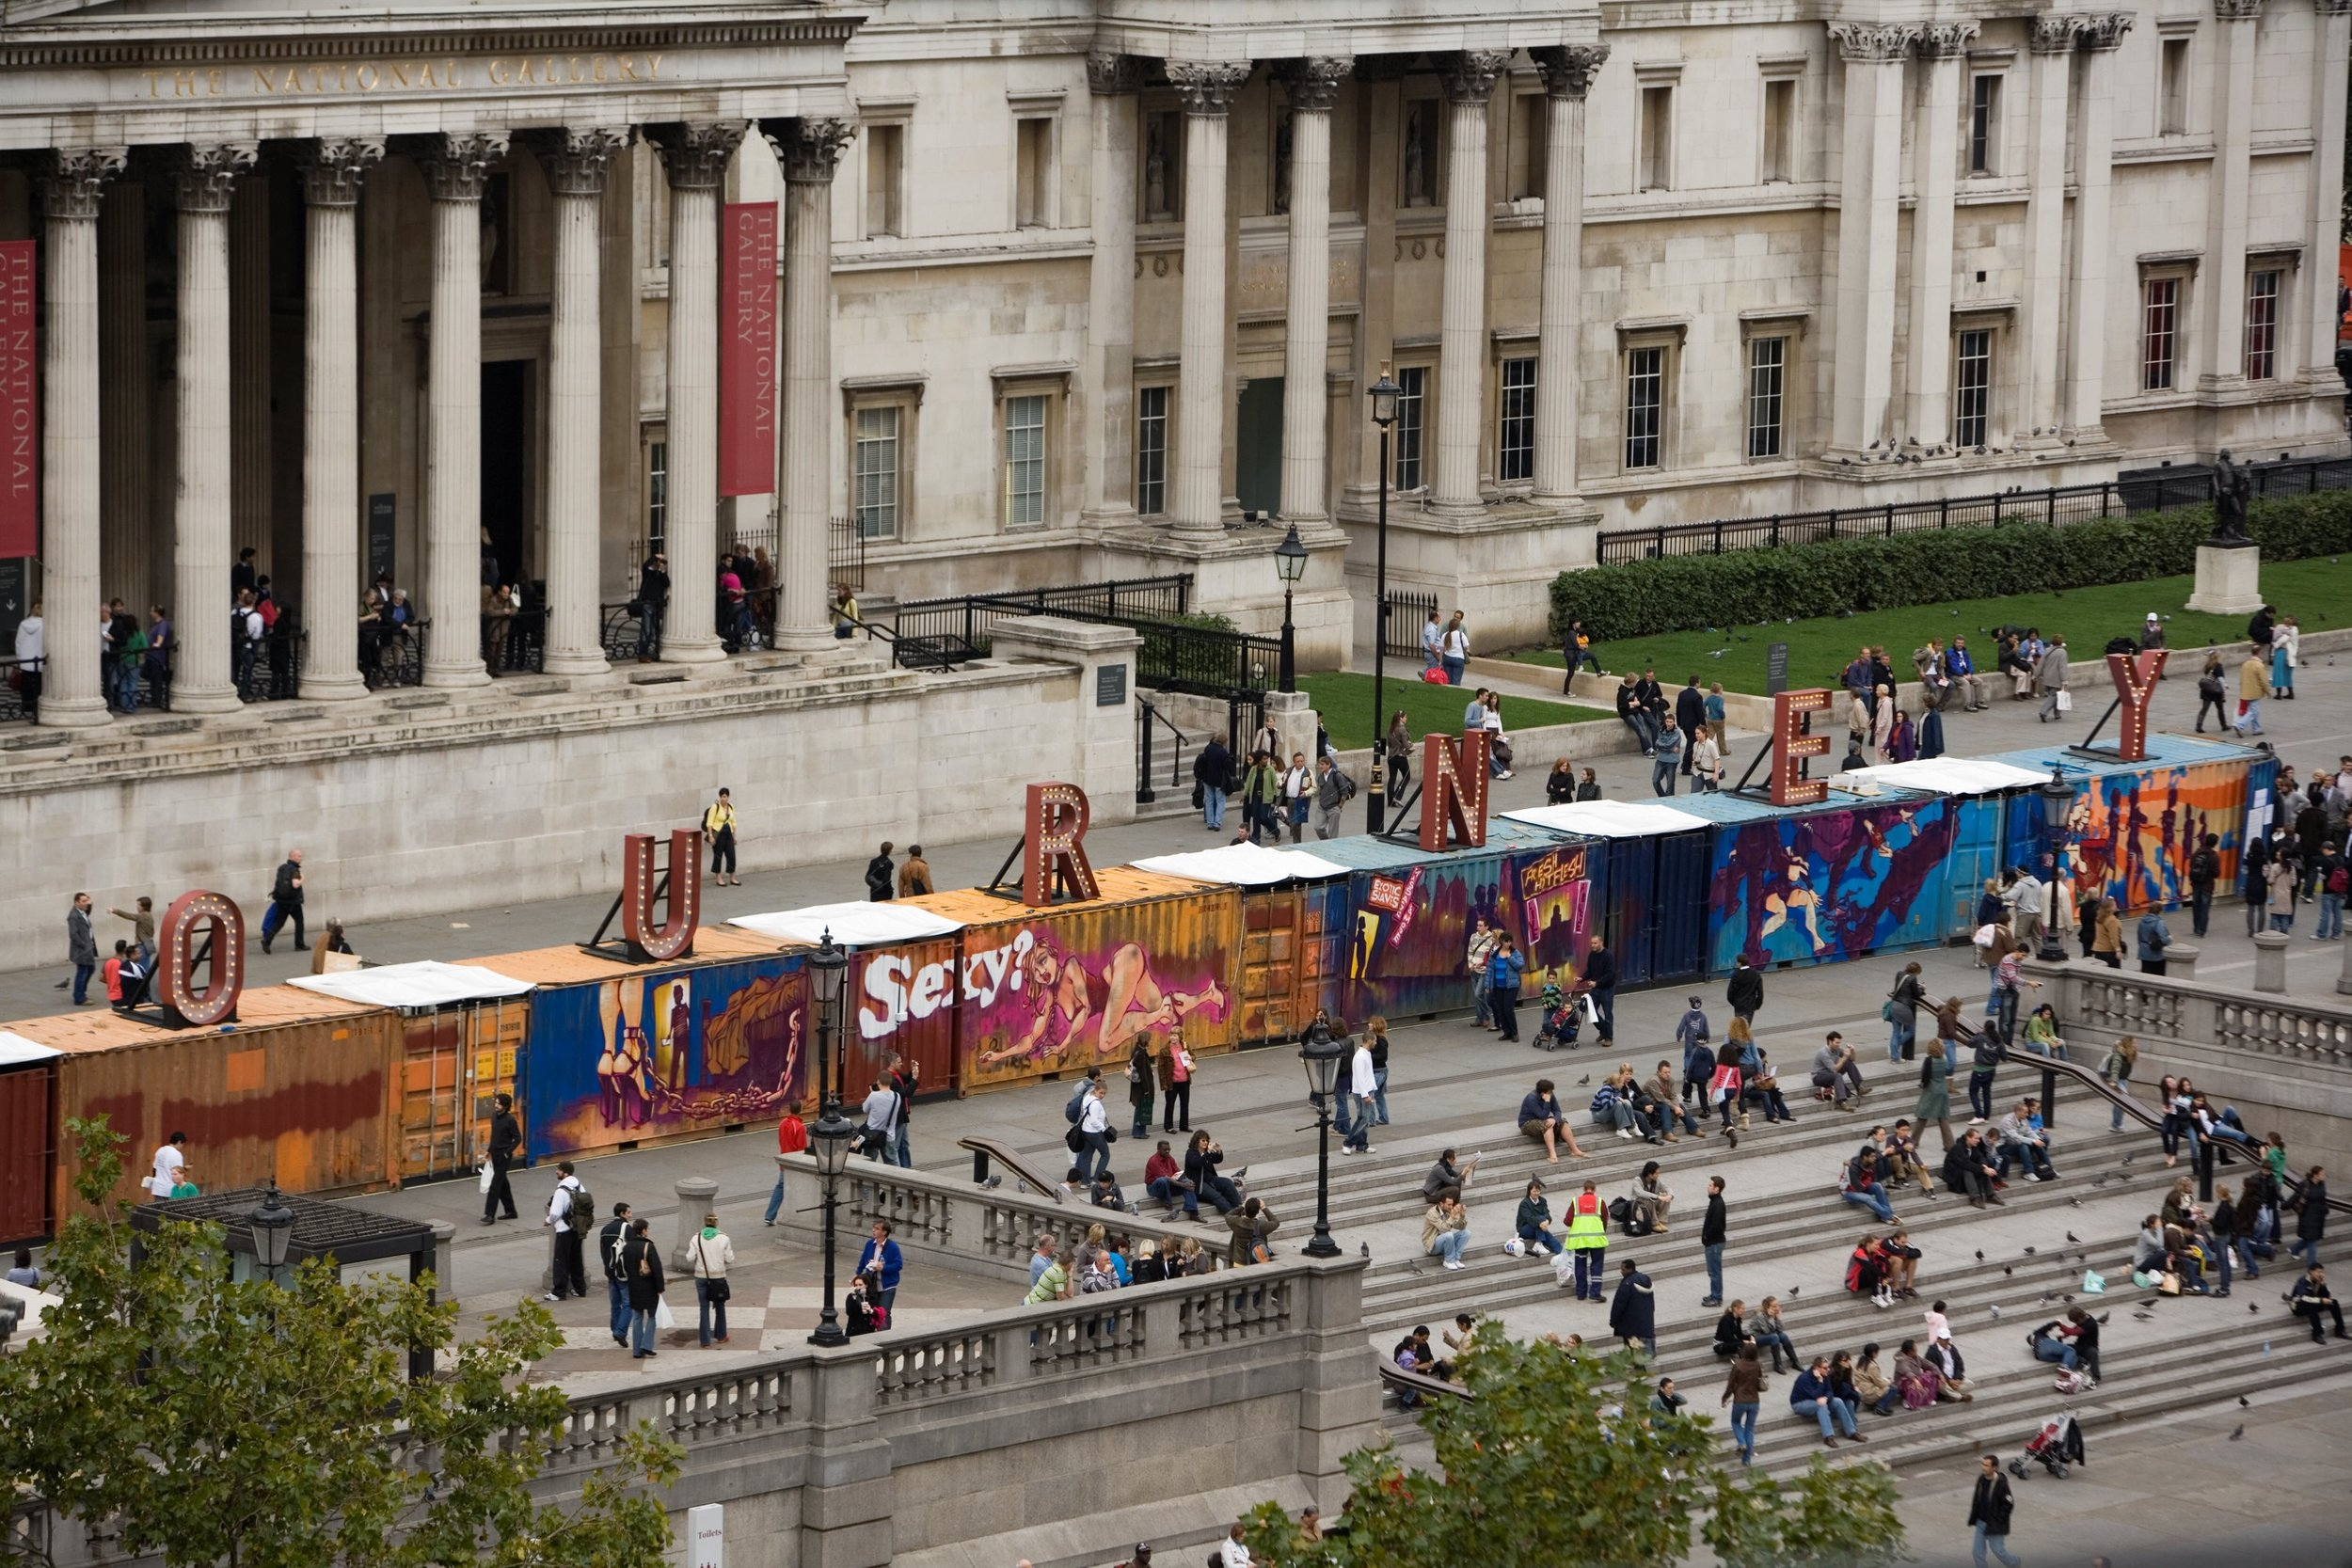 Aerial view of The Journey, Trafalgar Square, London, 2012.